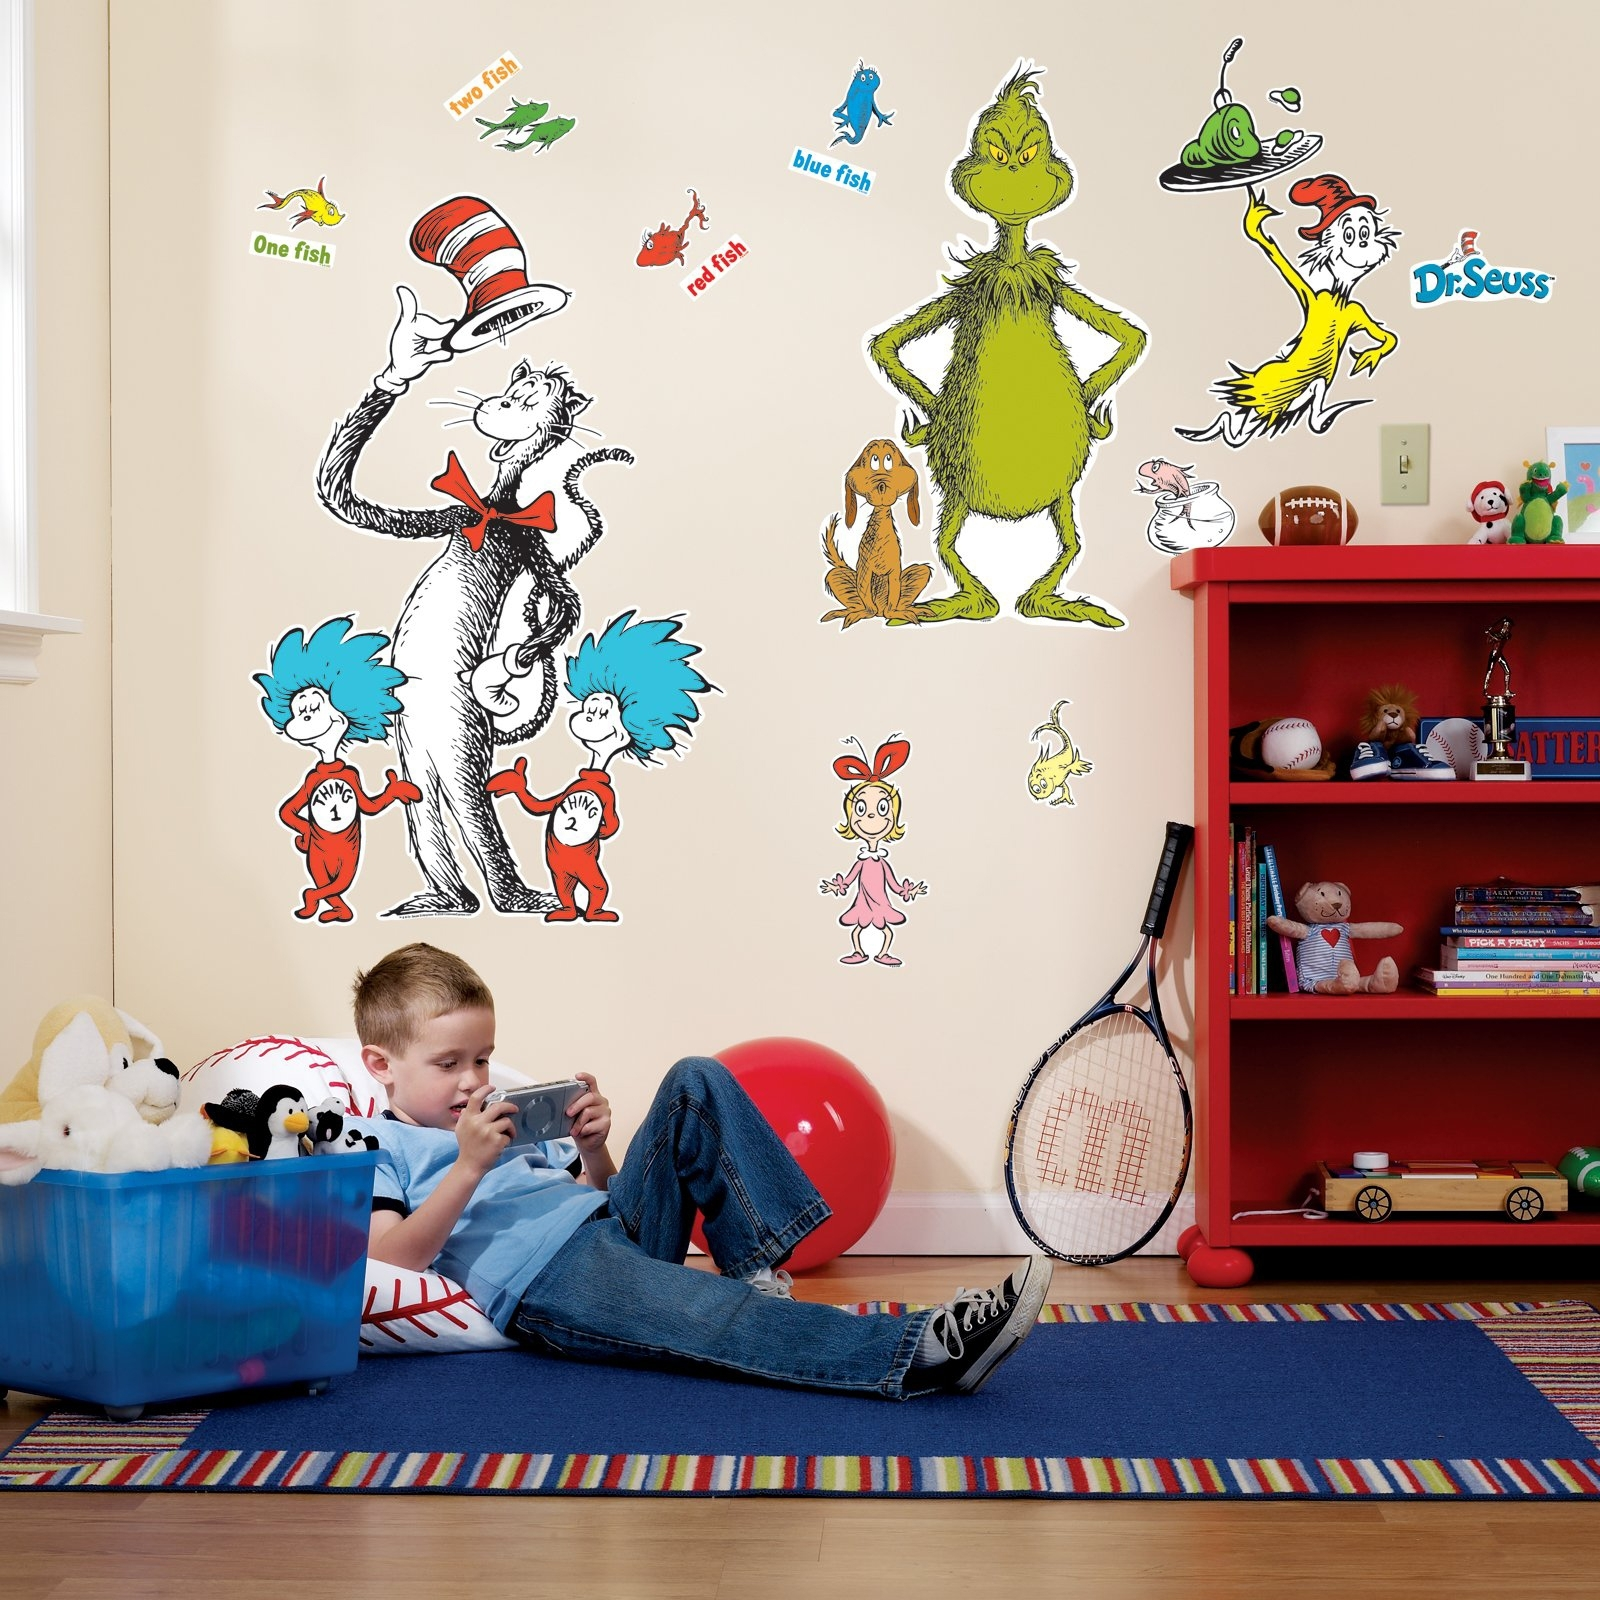 The Official Pbs Kids Shop | Dr. Seuss Giant Wall Decals Regarding Most Recent Dr Seuss Wall Art (Gallery 4 of 20)